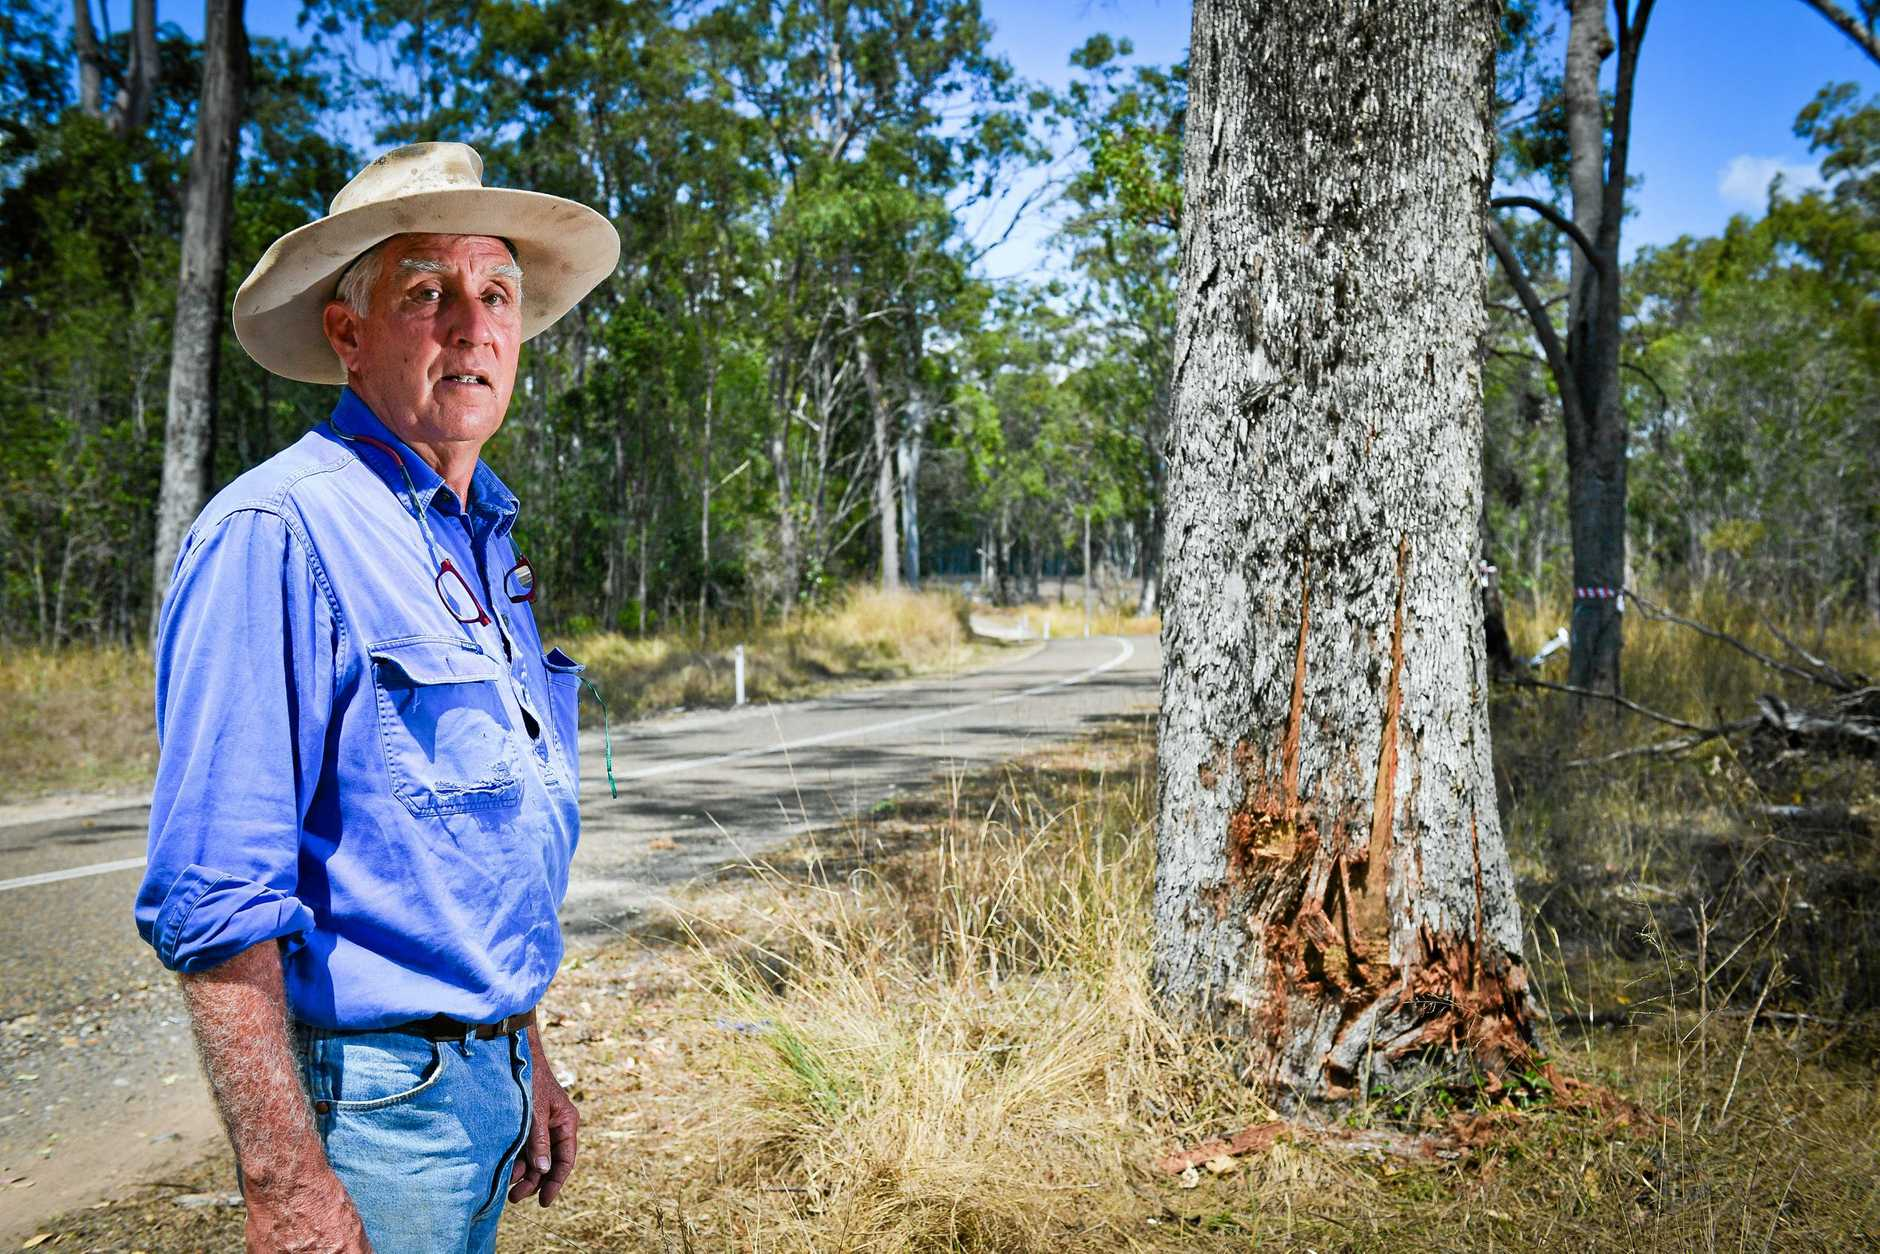 A vehicle hit this tree just 3 weeks prior to Monday's fatal accident just meters away.John Bell owns the land adjacent to Monday's fatal crash and has concerns about the road given the number of other accidents there in recently years.